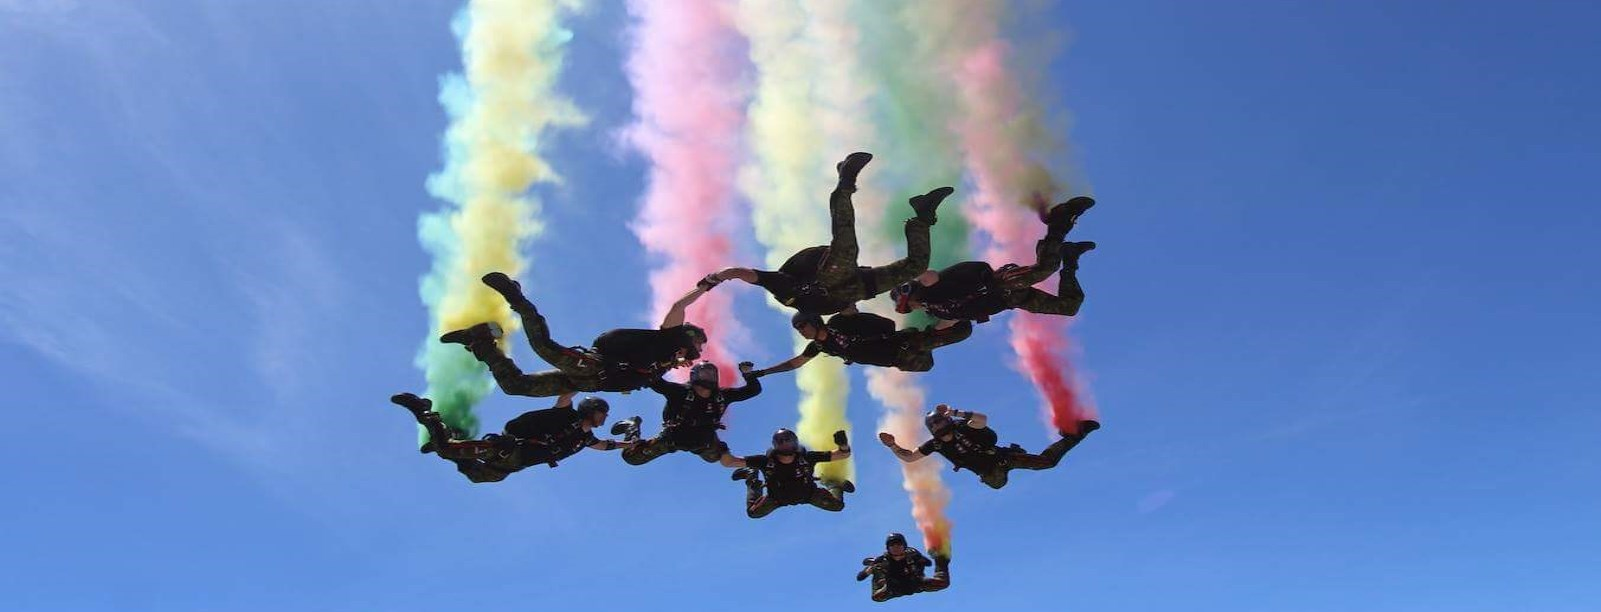 Skyhawks skydiving with colourful streams